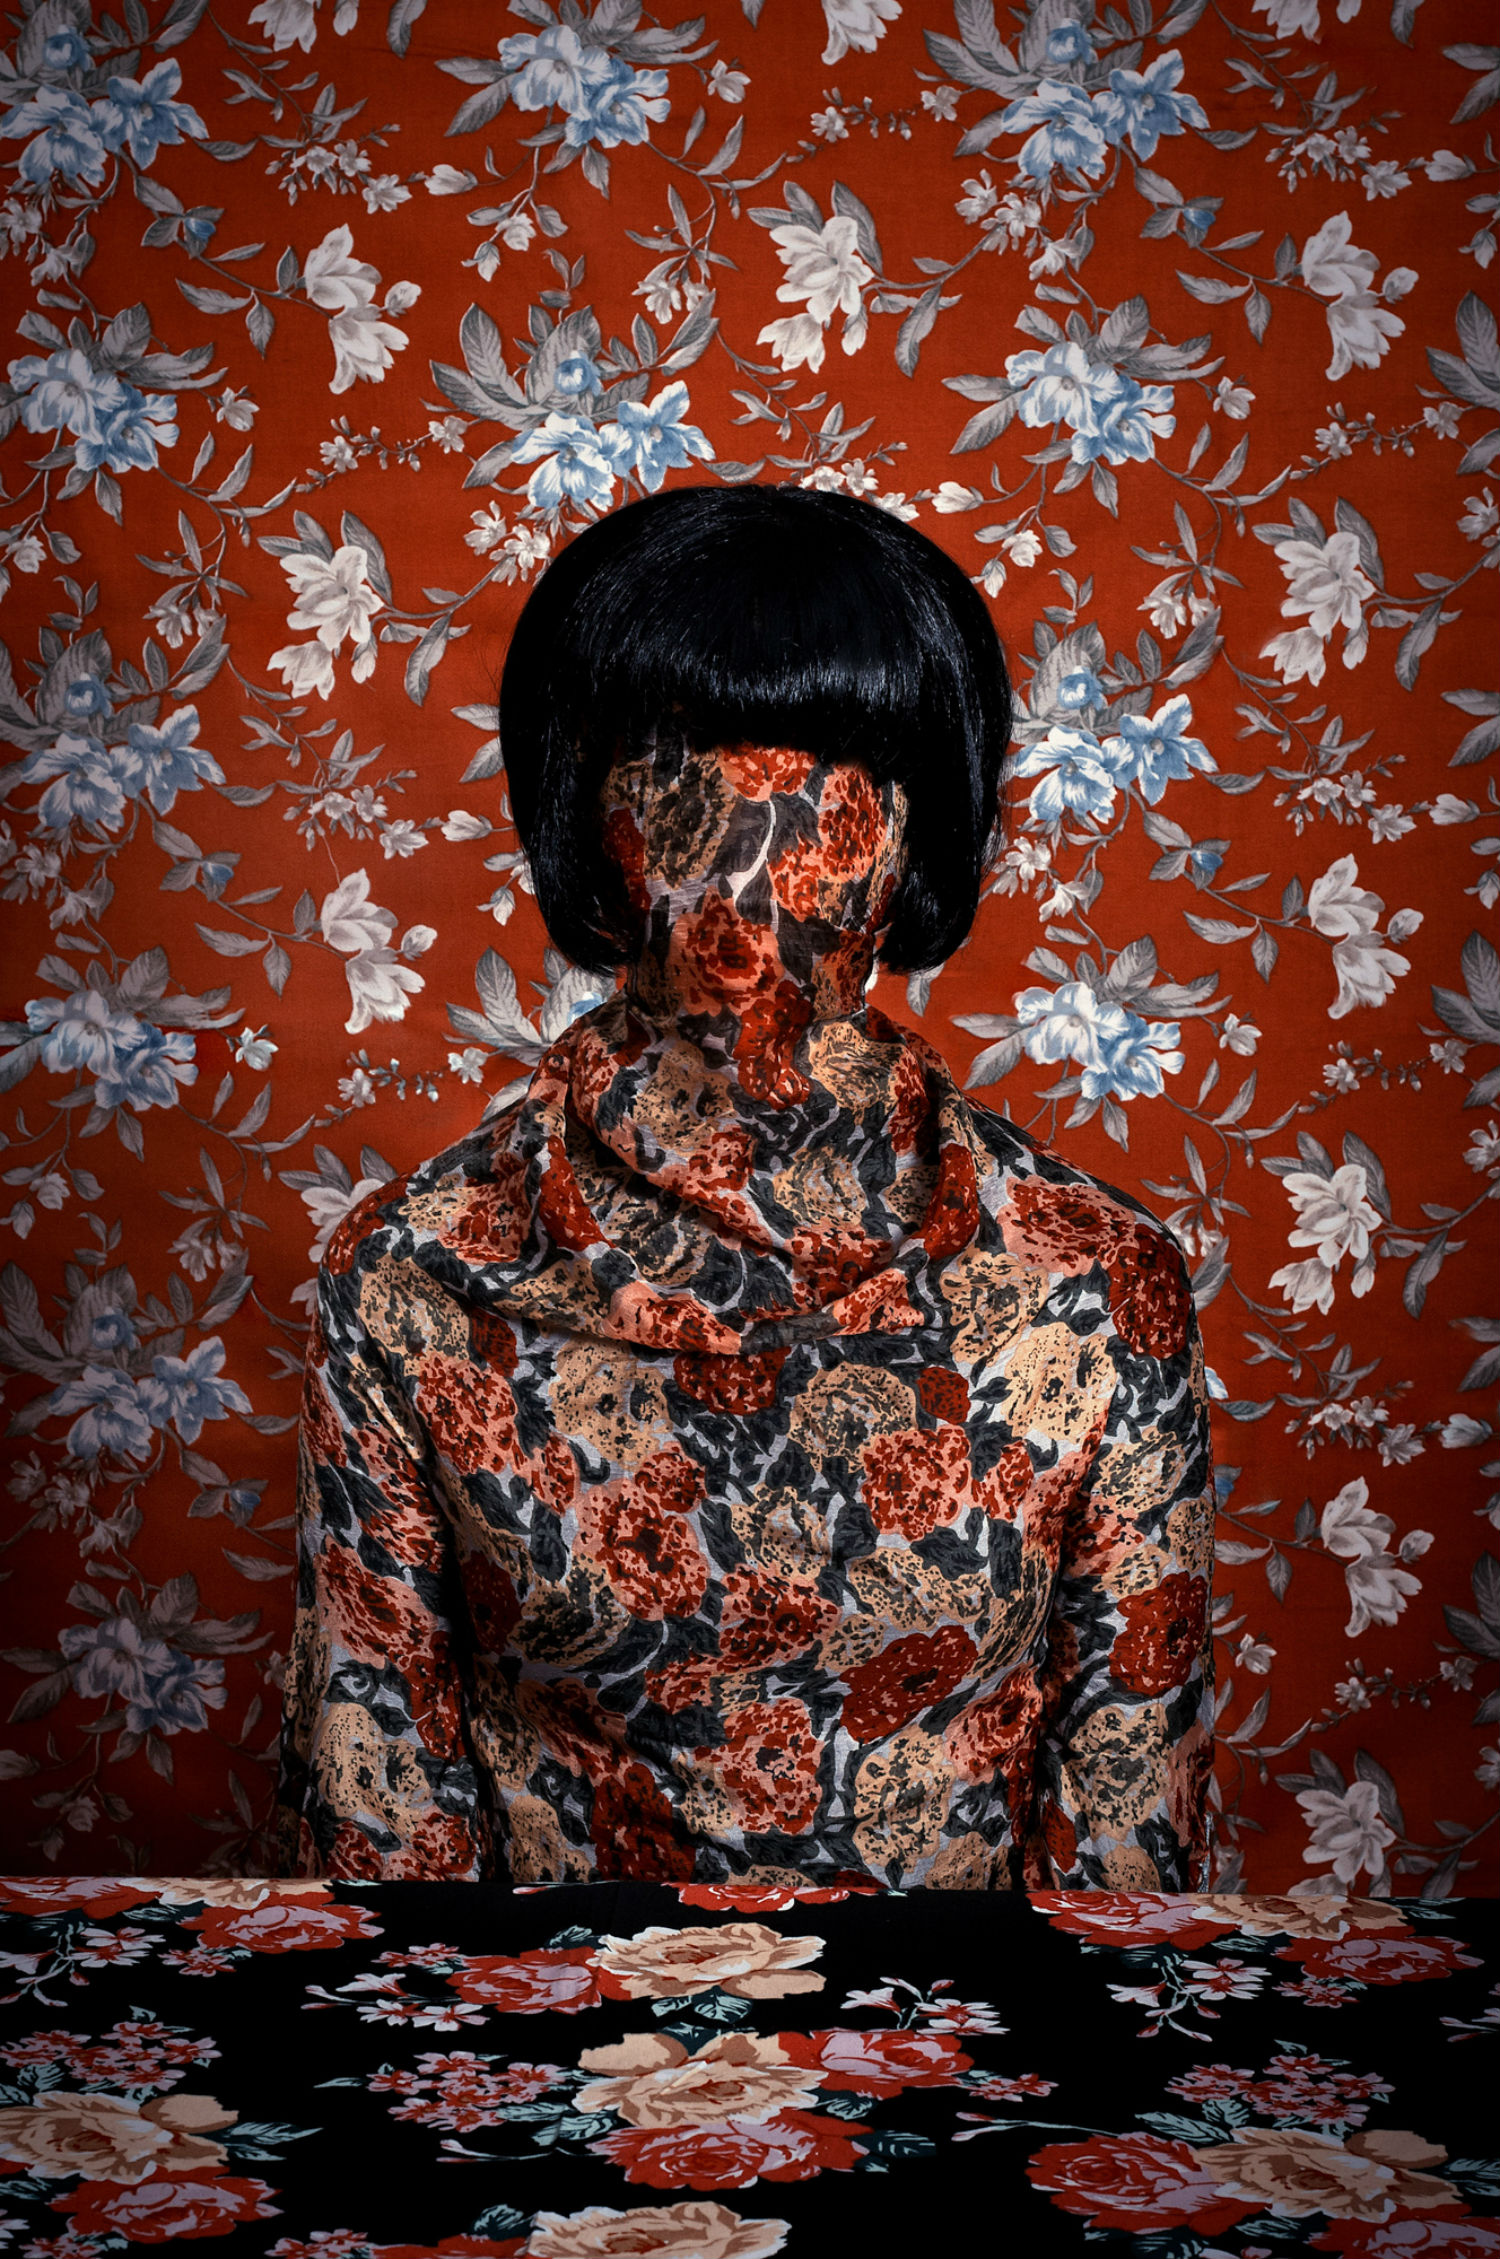 romina ressia photography art illusion blend background pattern shape